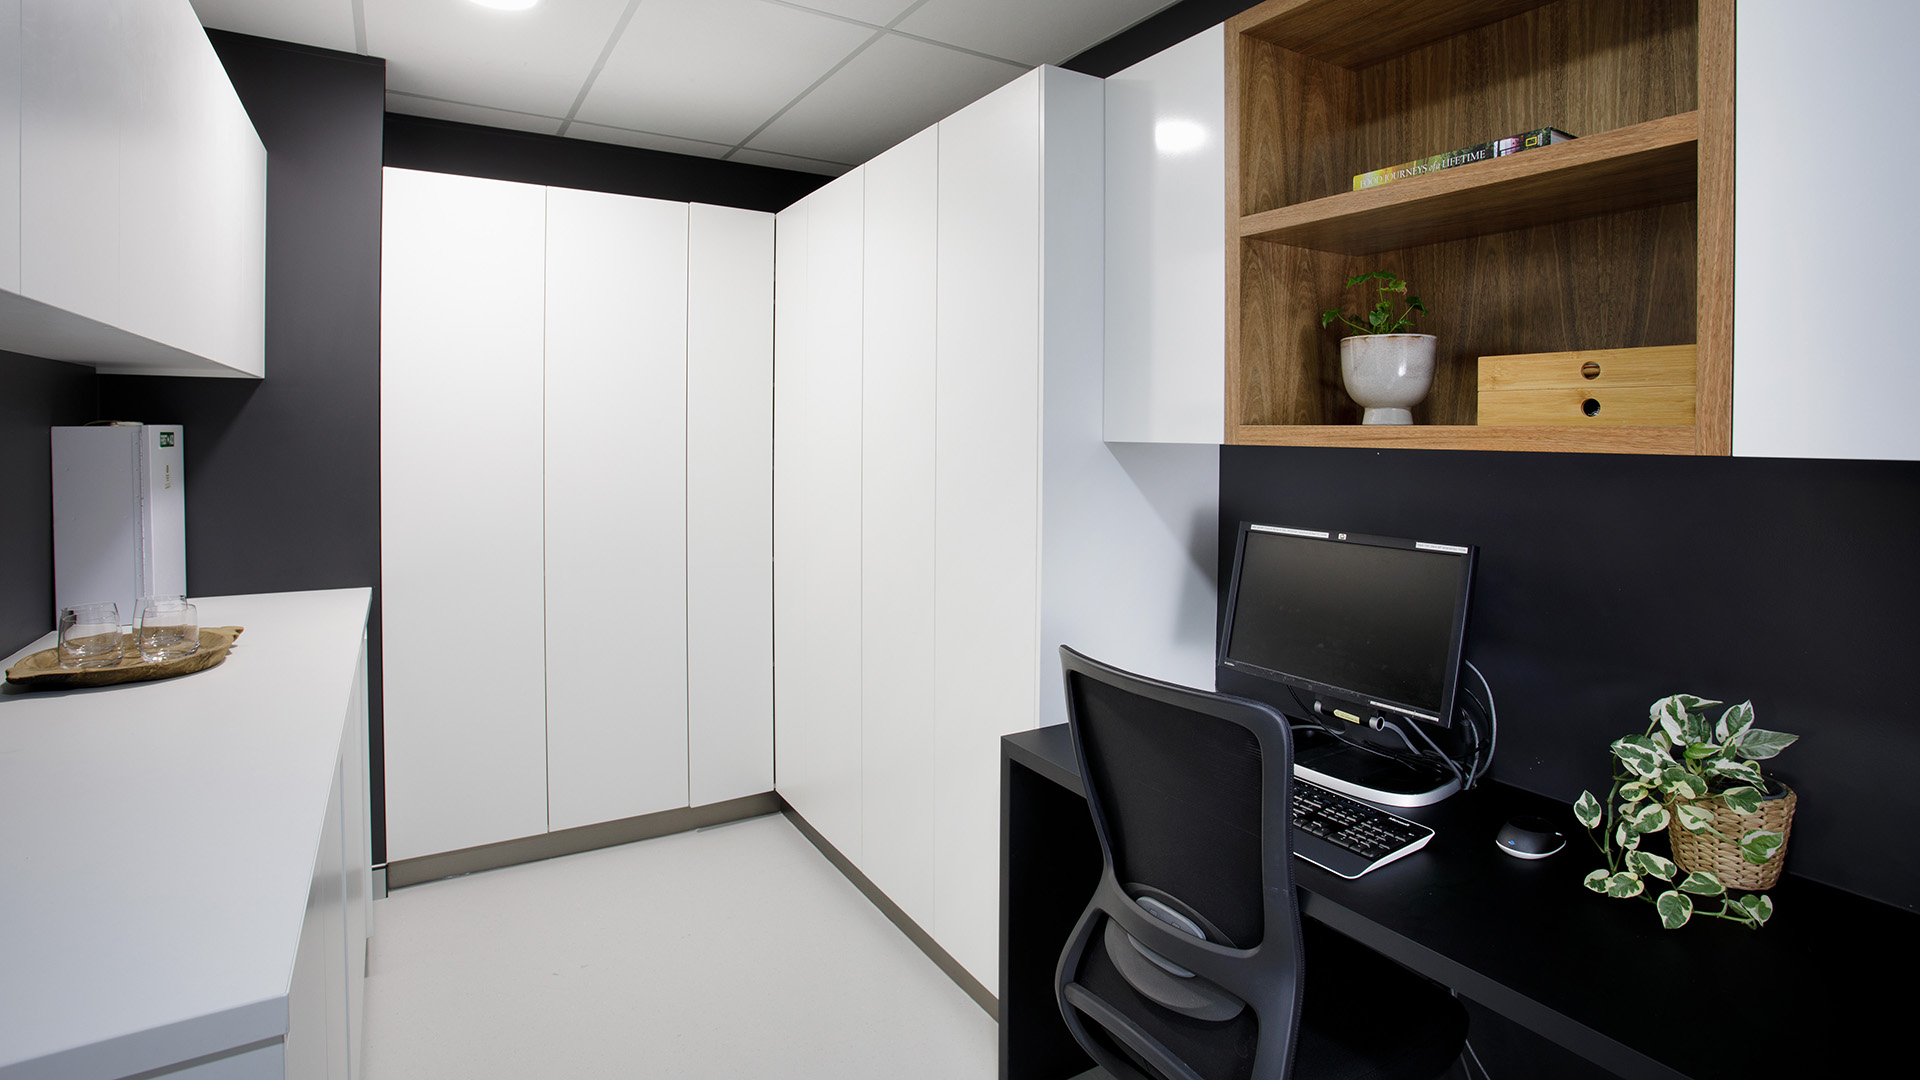 dental fit out specialists brisbane, medical fit out specialists brisbane